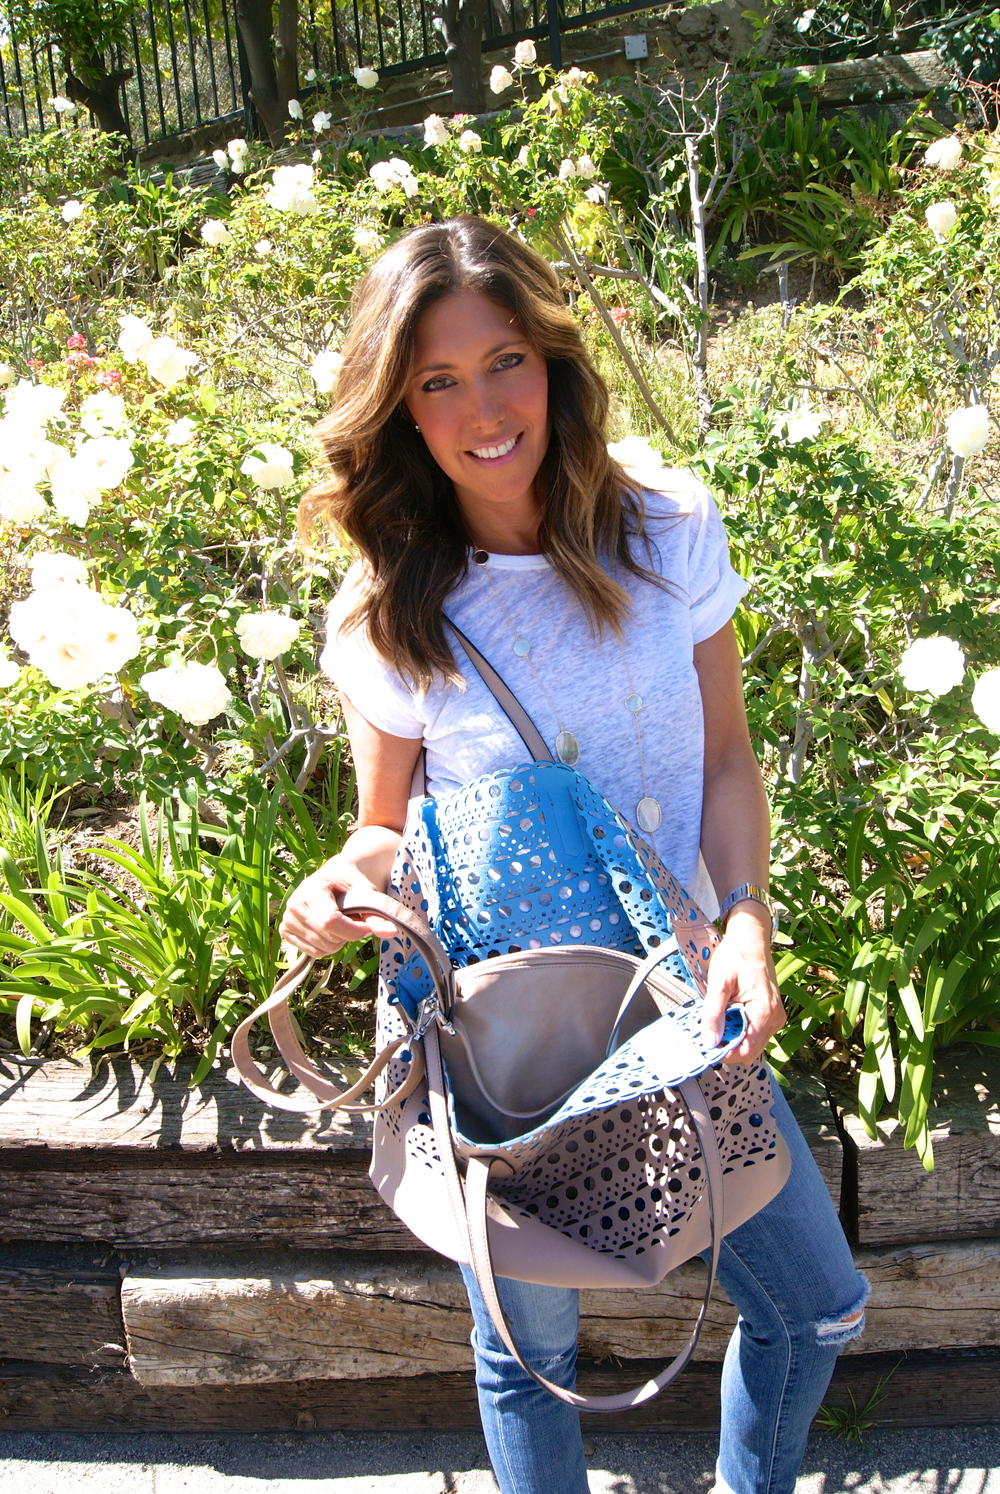 Perforated leather bags, $130. To order, contact Esther Feder, essiela@gmail.com, 310-490-5515.